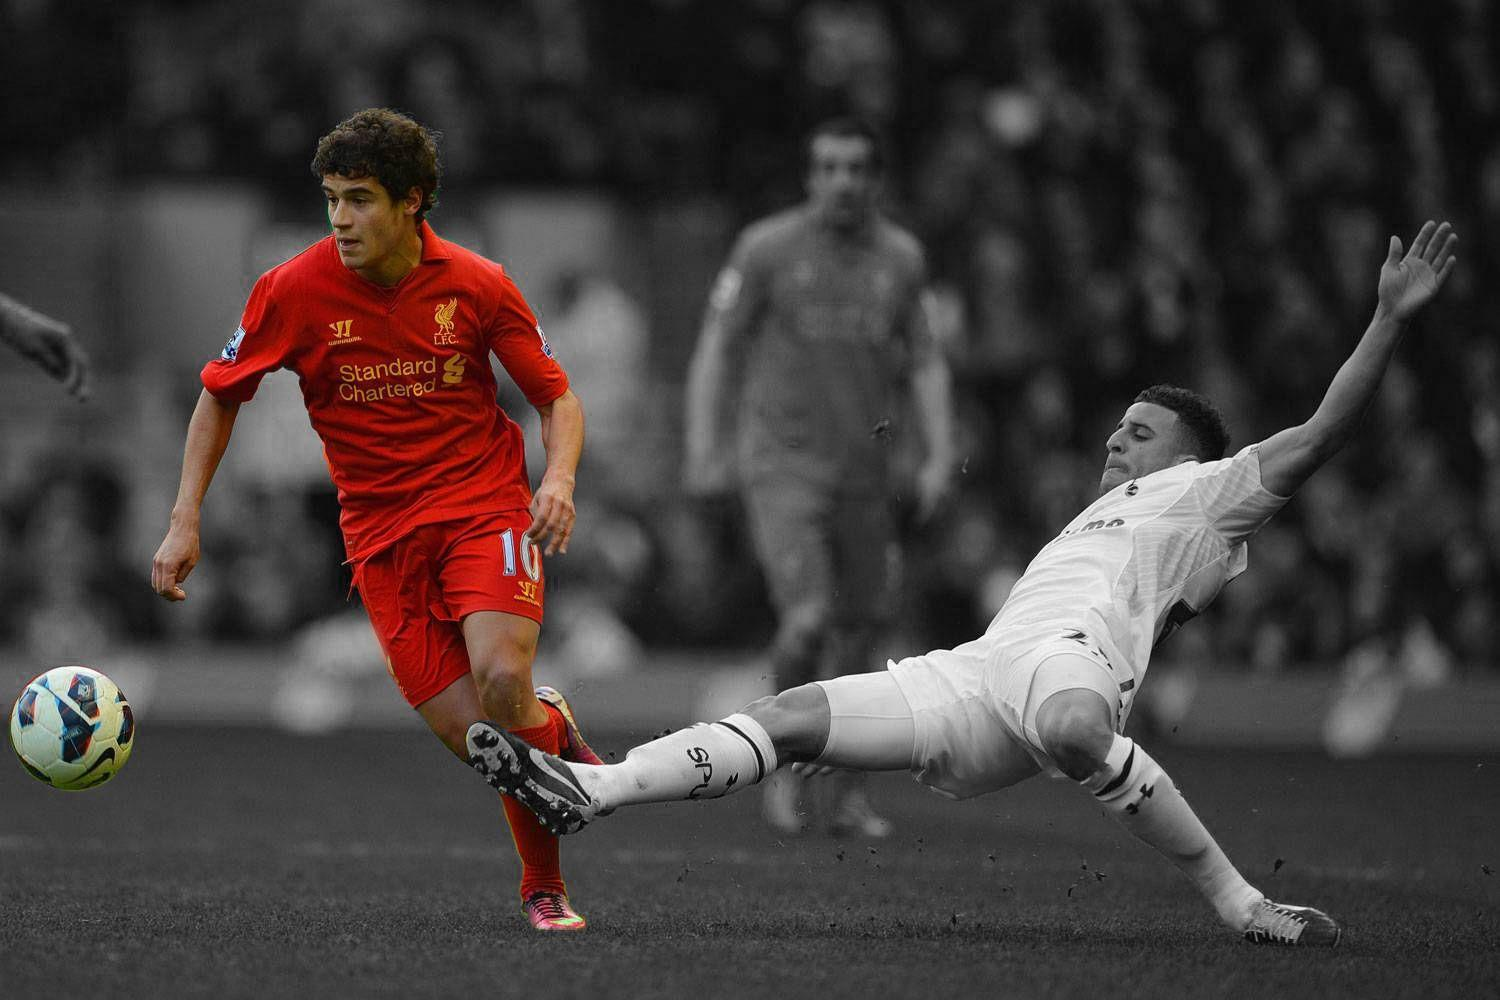 Philippe coutinho wallpapers wallpaper cave - Coutinho wallpaper hd ...